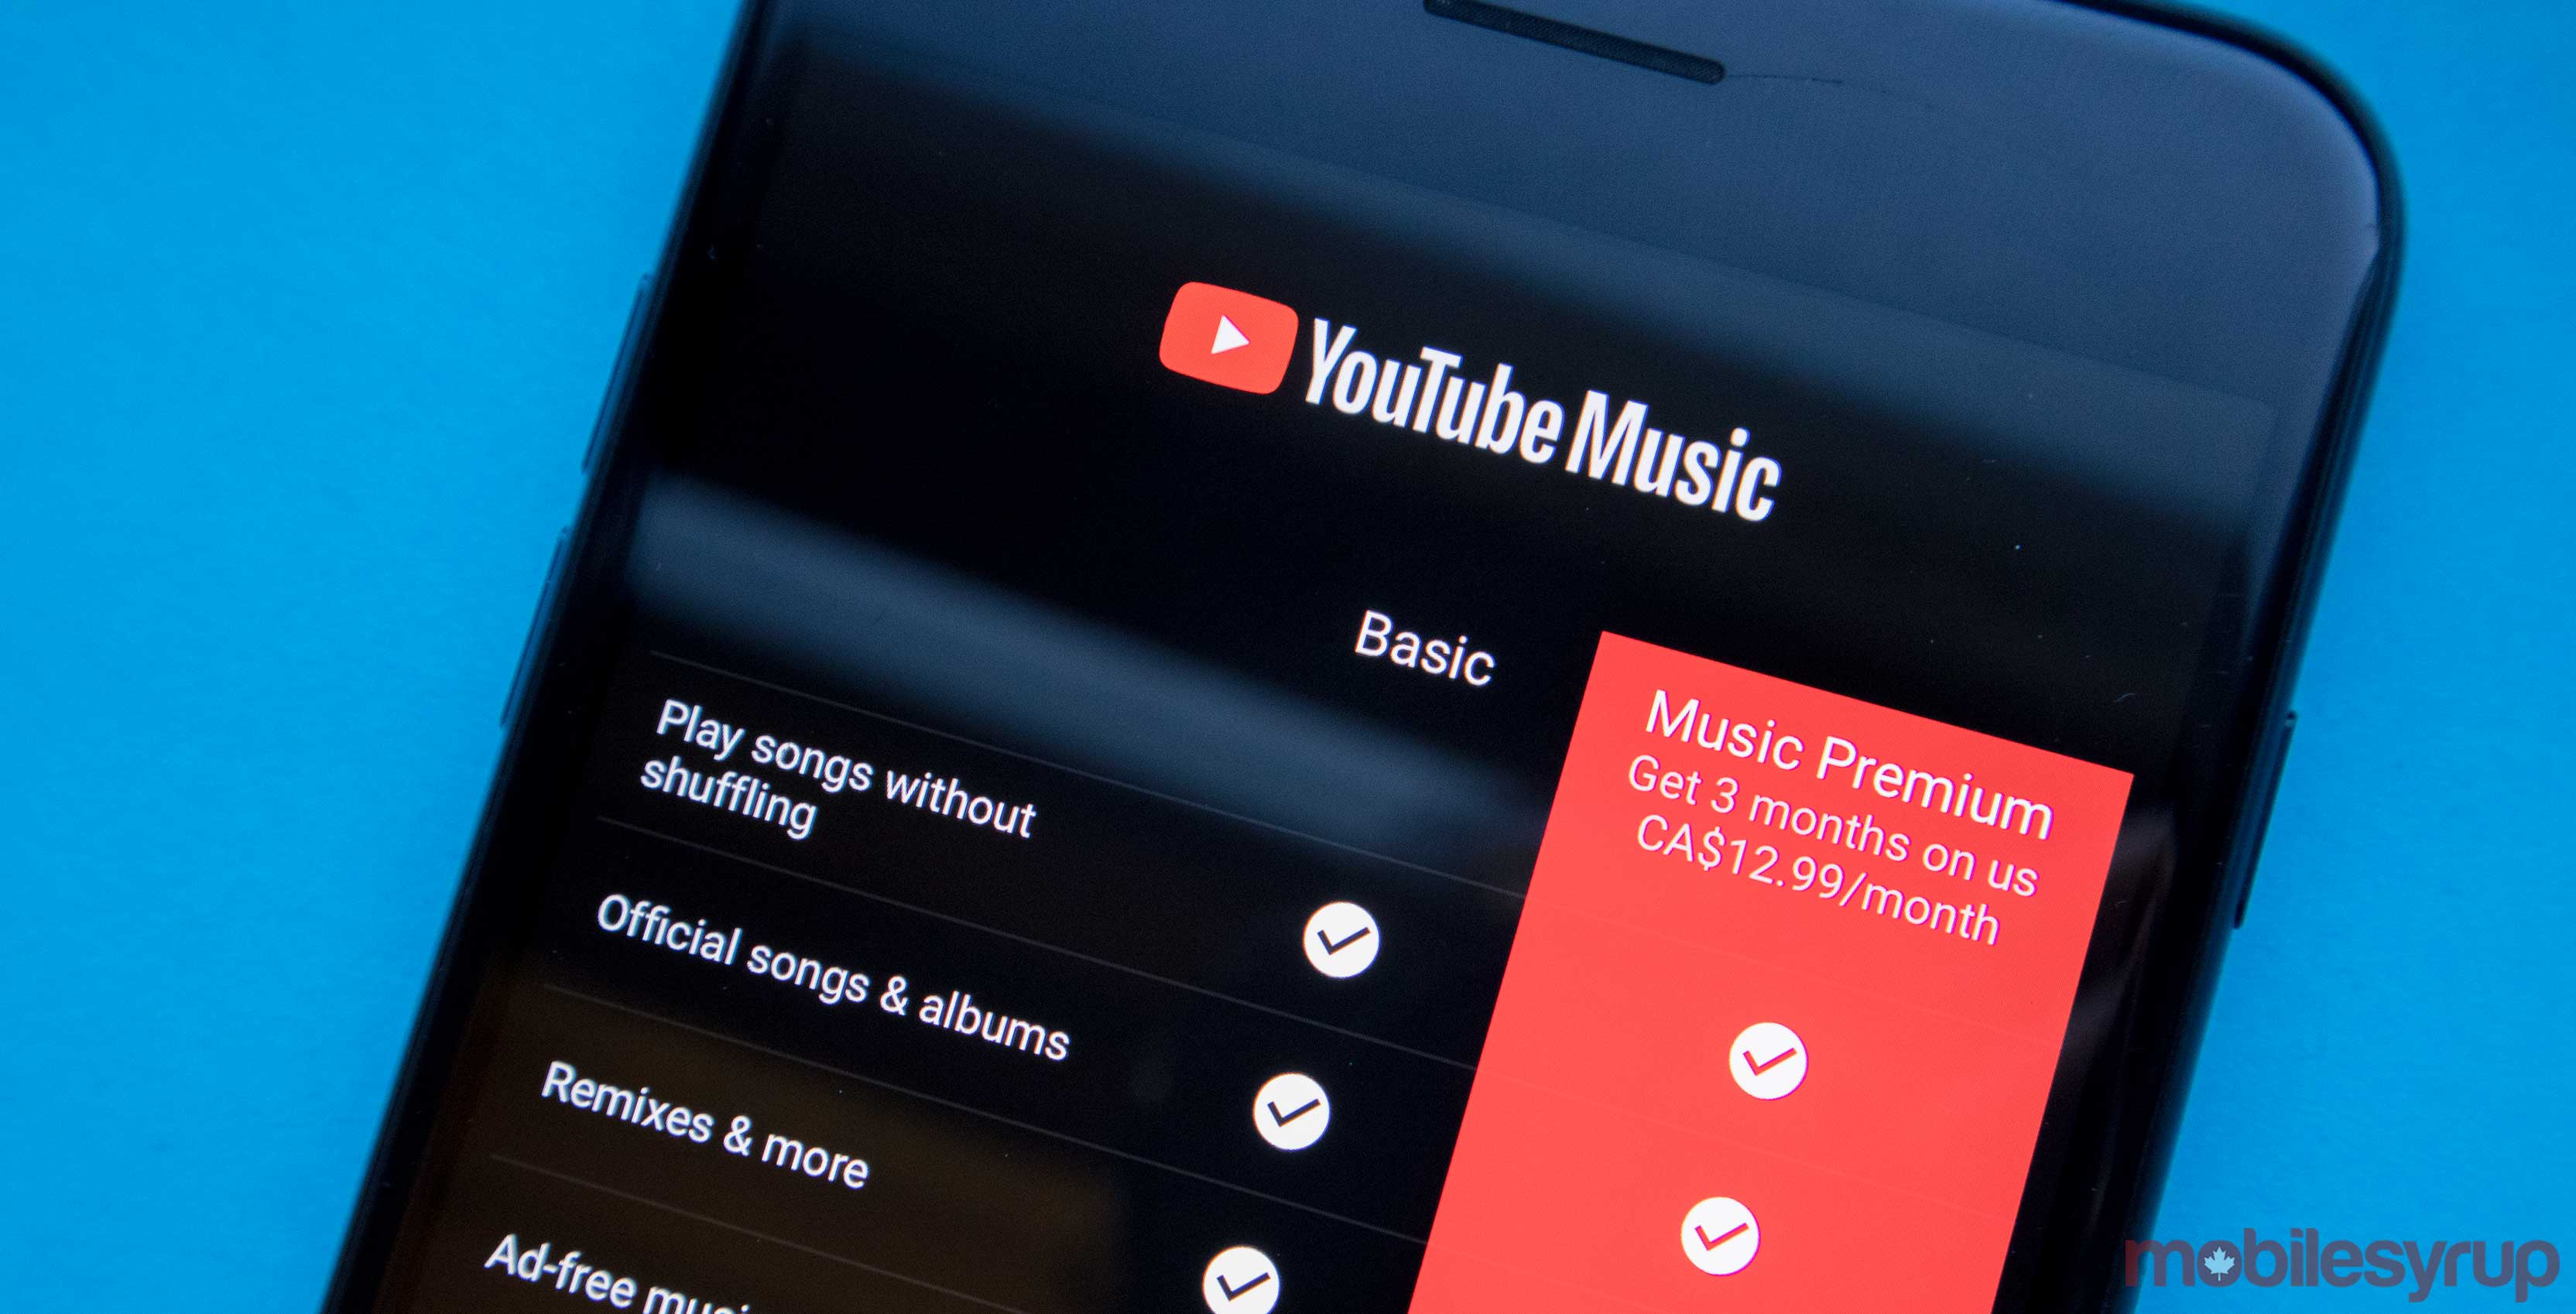 It's more expensive to subscribe to YouTube Music on iOS